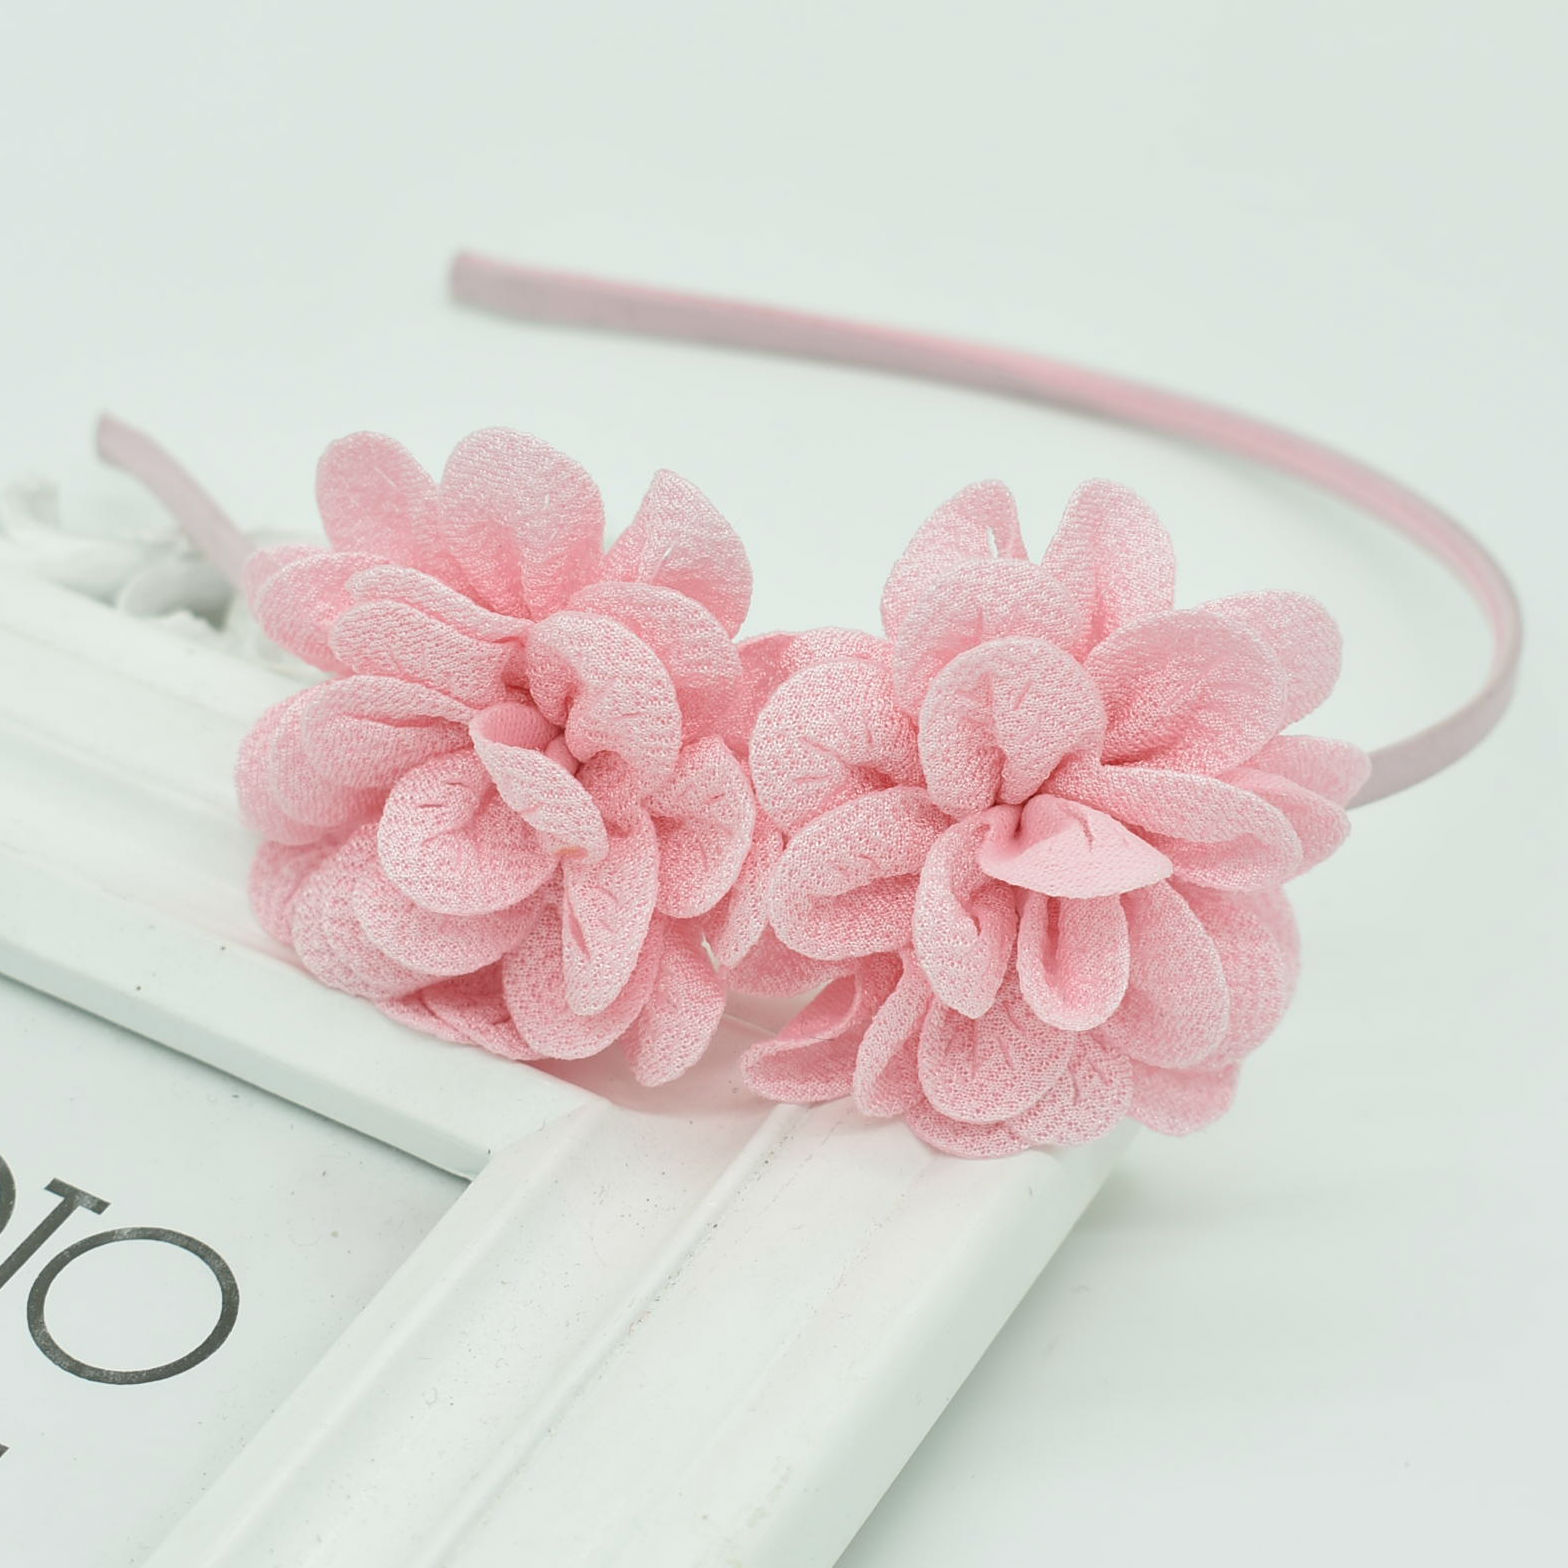 2018 New Popular Children's Two Flower Headband Headdress Girls Multicolor Hair Accessories Flower Hair Band Female Pop Gift